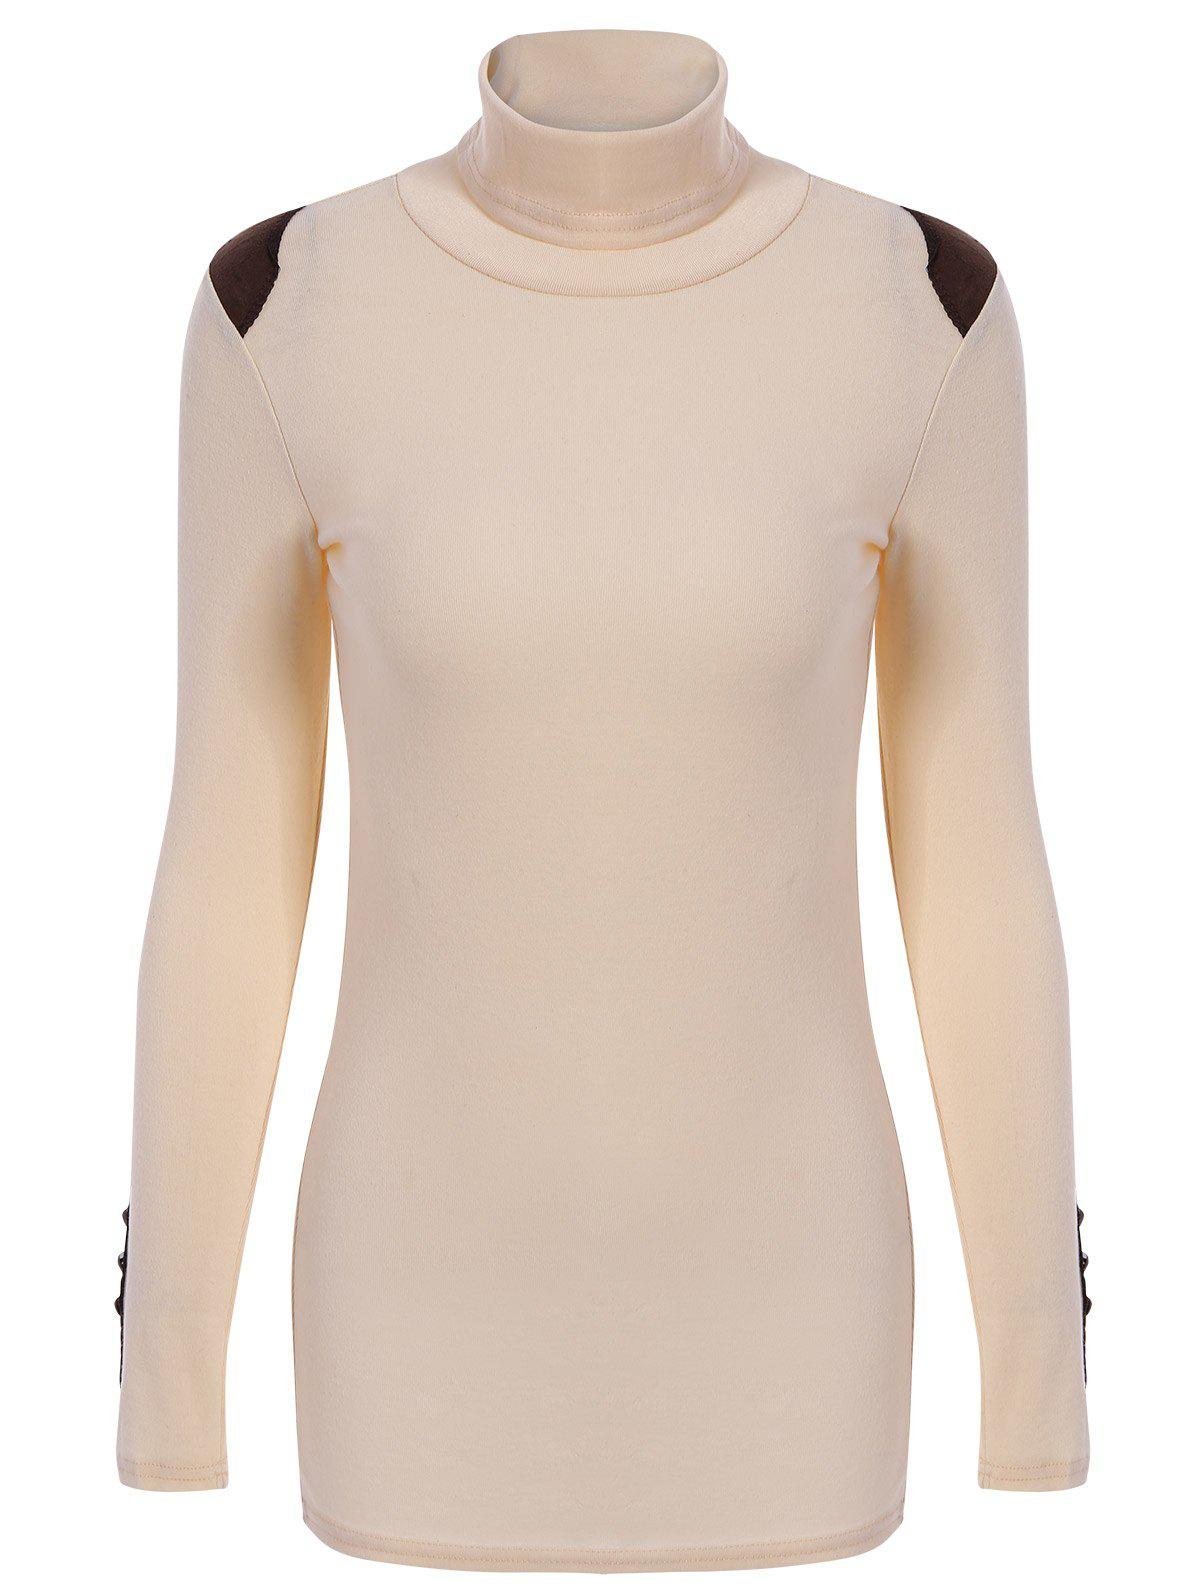 Casual Style Turtle Neck Solid Color Bead Splicing Long Sleeve Sweater For WomenWOMEN<br><br>Size: ONE SIZE; Color: LIGHT APRICOT; Type: Pullovers; Material: Cotton; Sleeve Length: Full; Collar: Turtleneck; Style: Casual; Pattern Type: Patchwork; Season: Fall,Spring; Weight: 0.260kg; Package Contents: 1 ? Sweater;